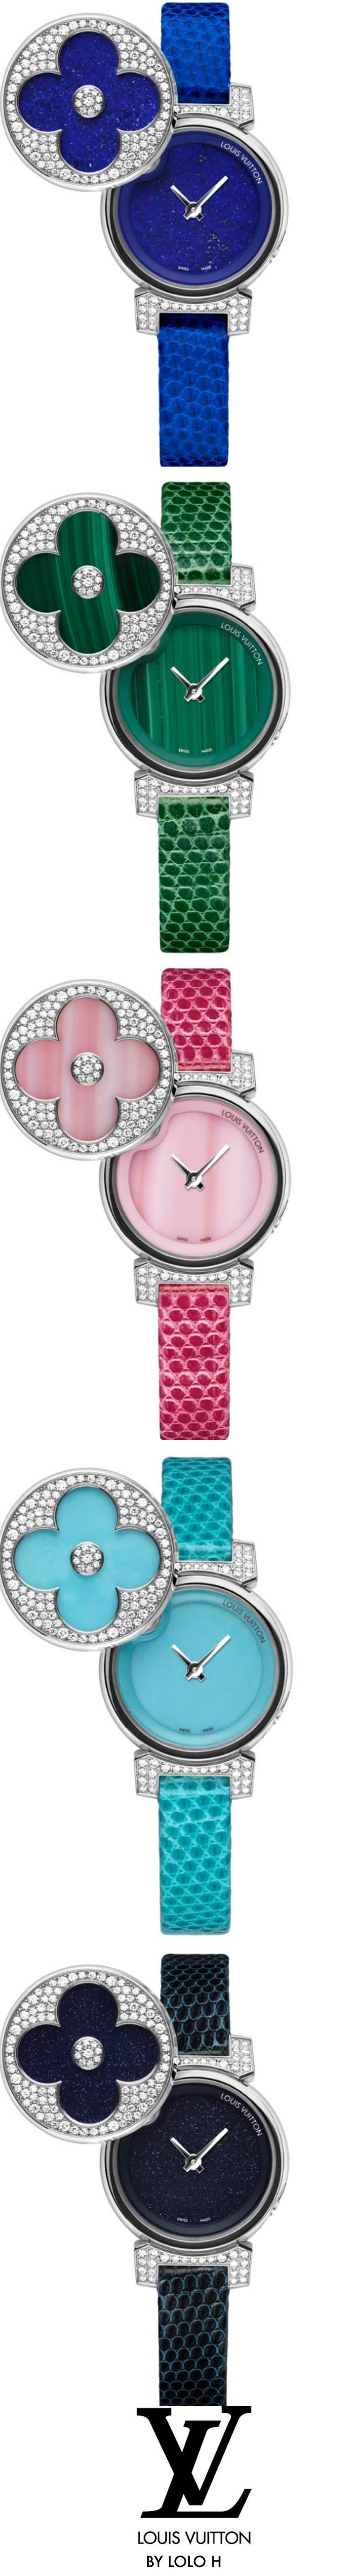 Louis Vuitton Tambour Bijou Secret Watches.♥✤ Coz Shopping Queens Need A Diff Color For Every Day Of The Week!